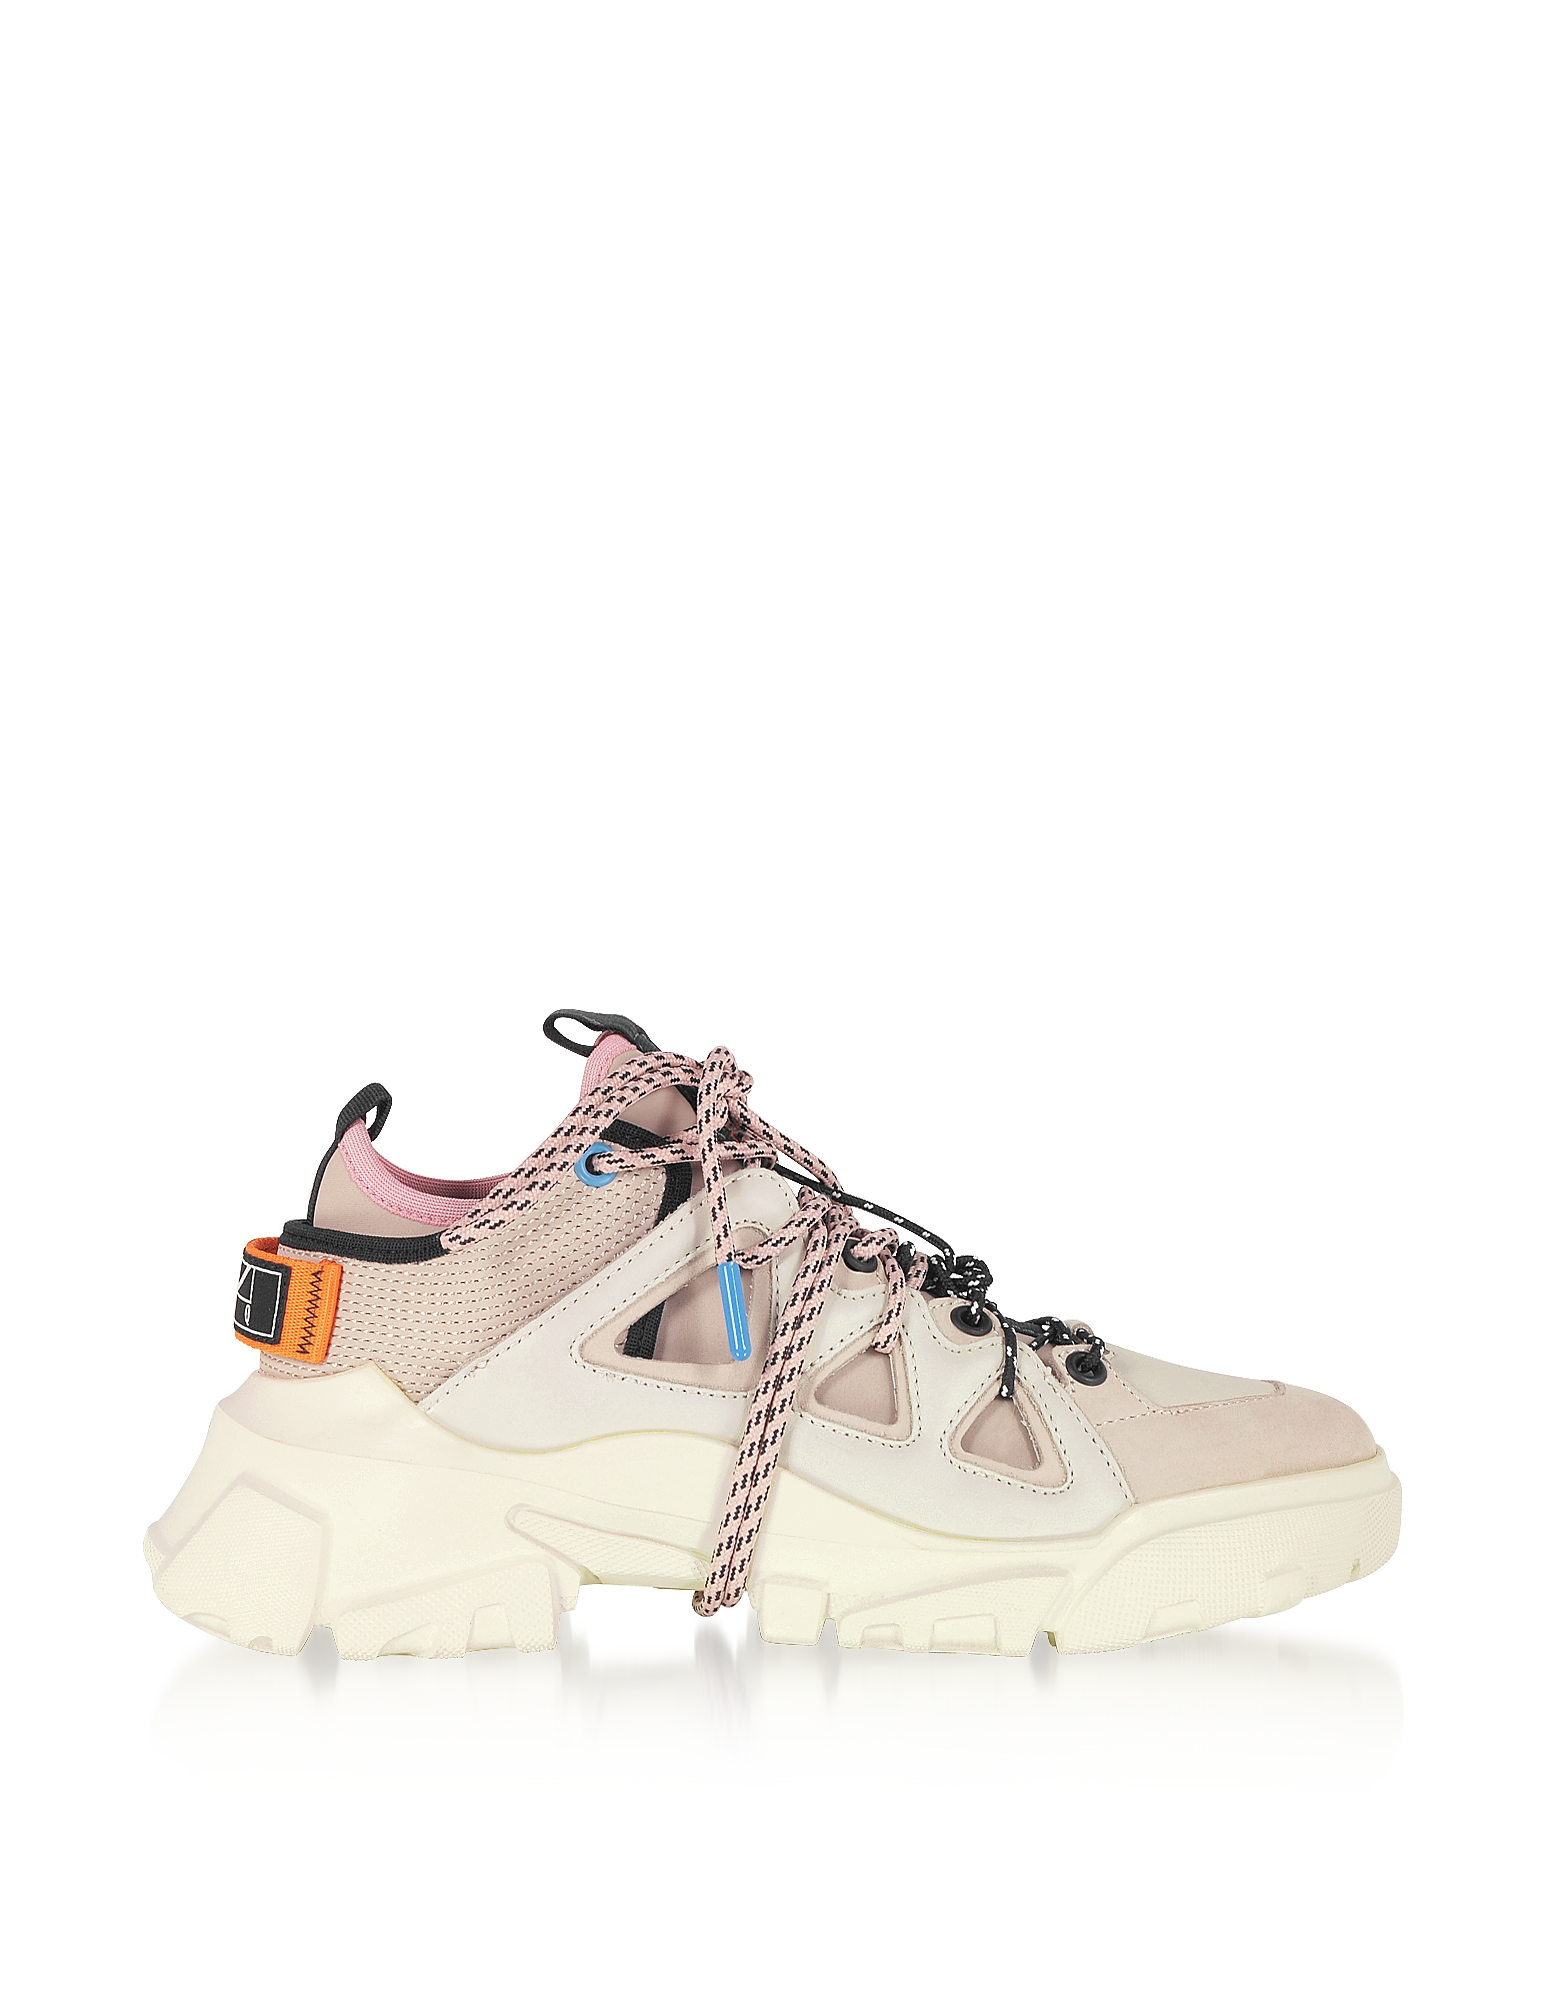 Orbyt Mid Off White Leather and Fabric Women's Sneakers